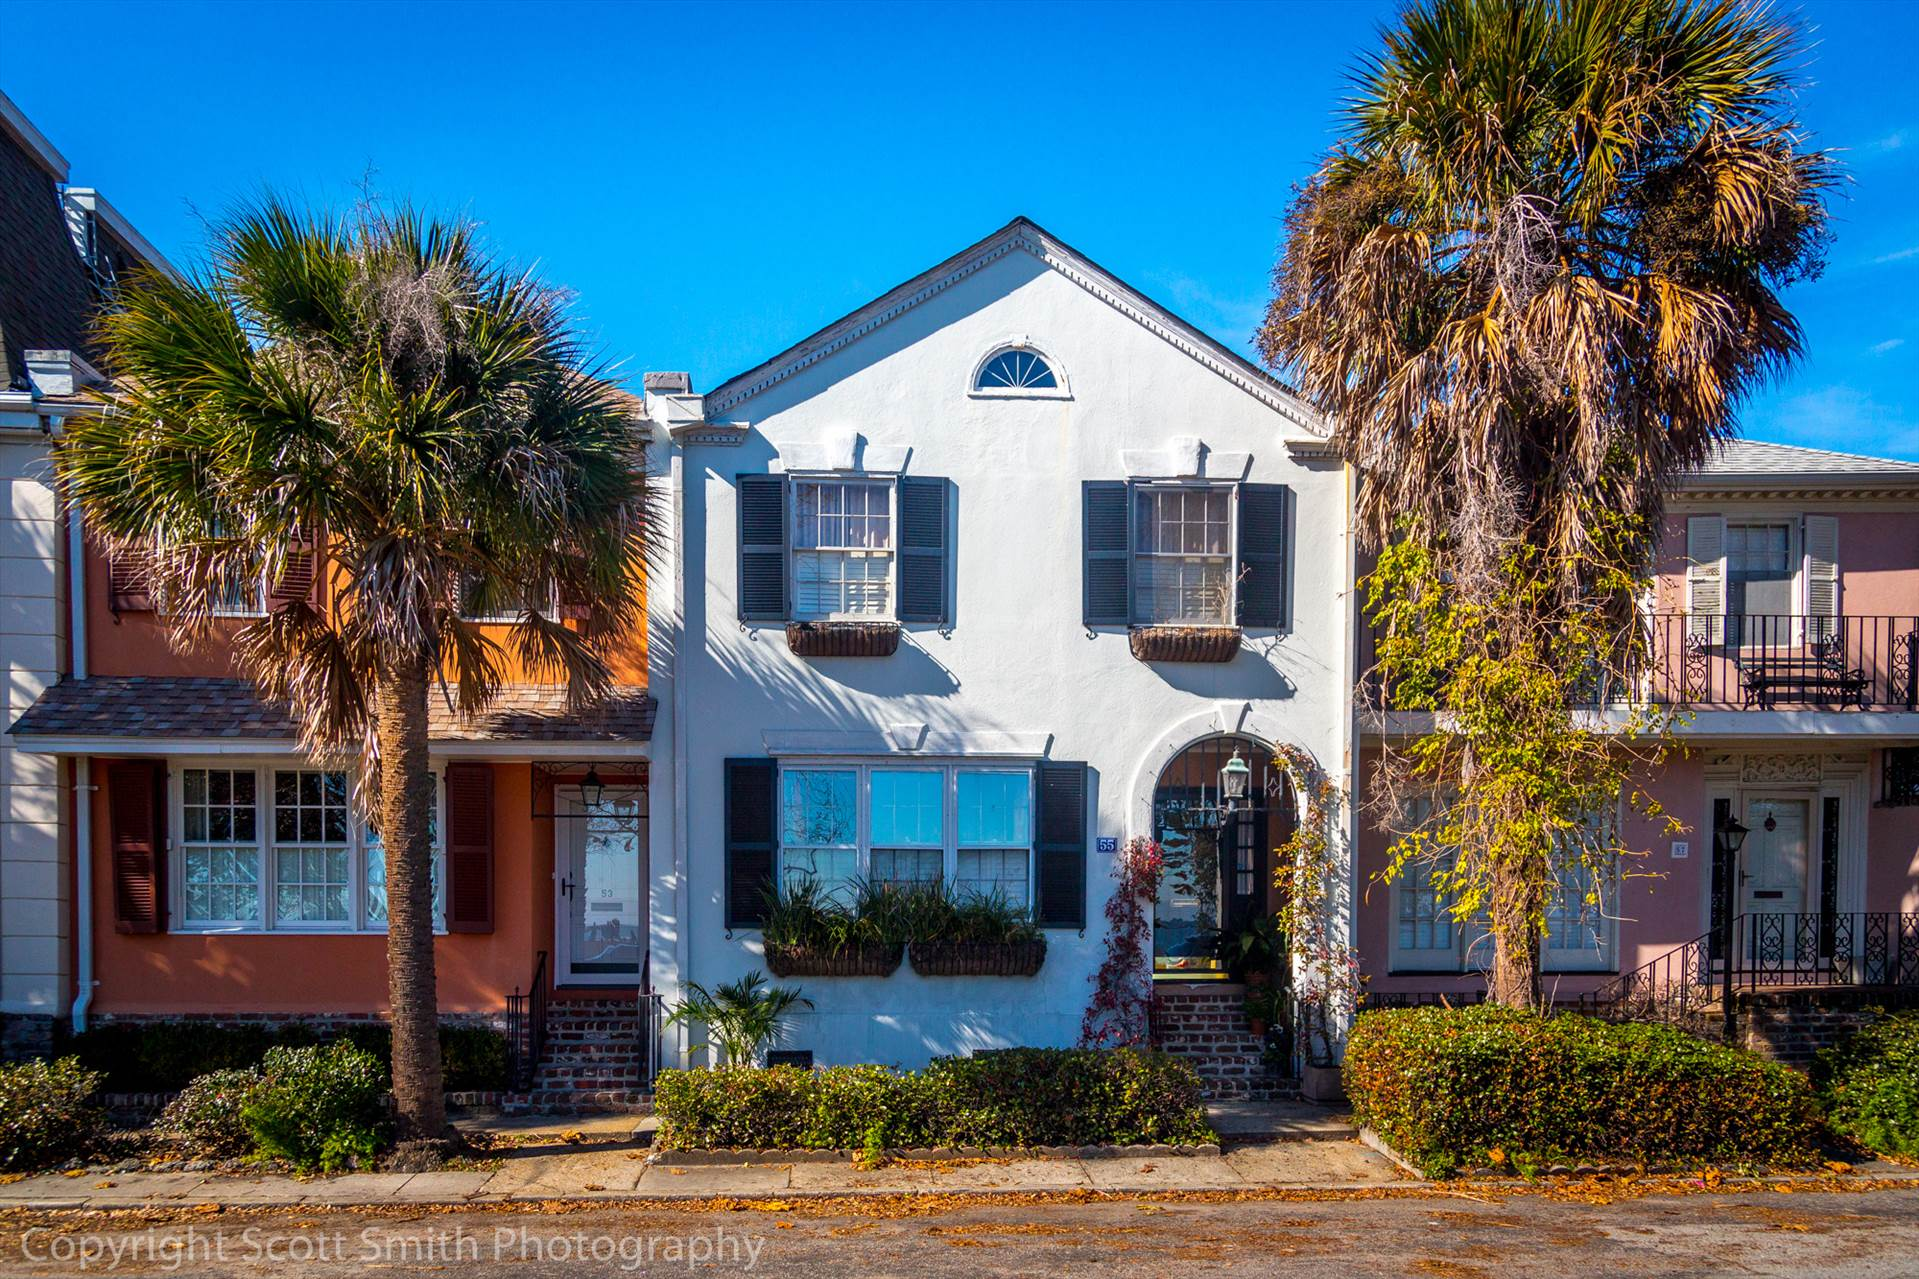 Facing the Bay - A row of restored homes face Charleston Bay in South Carolina. by Scott Smith Photos